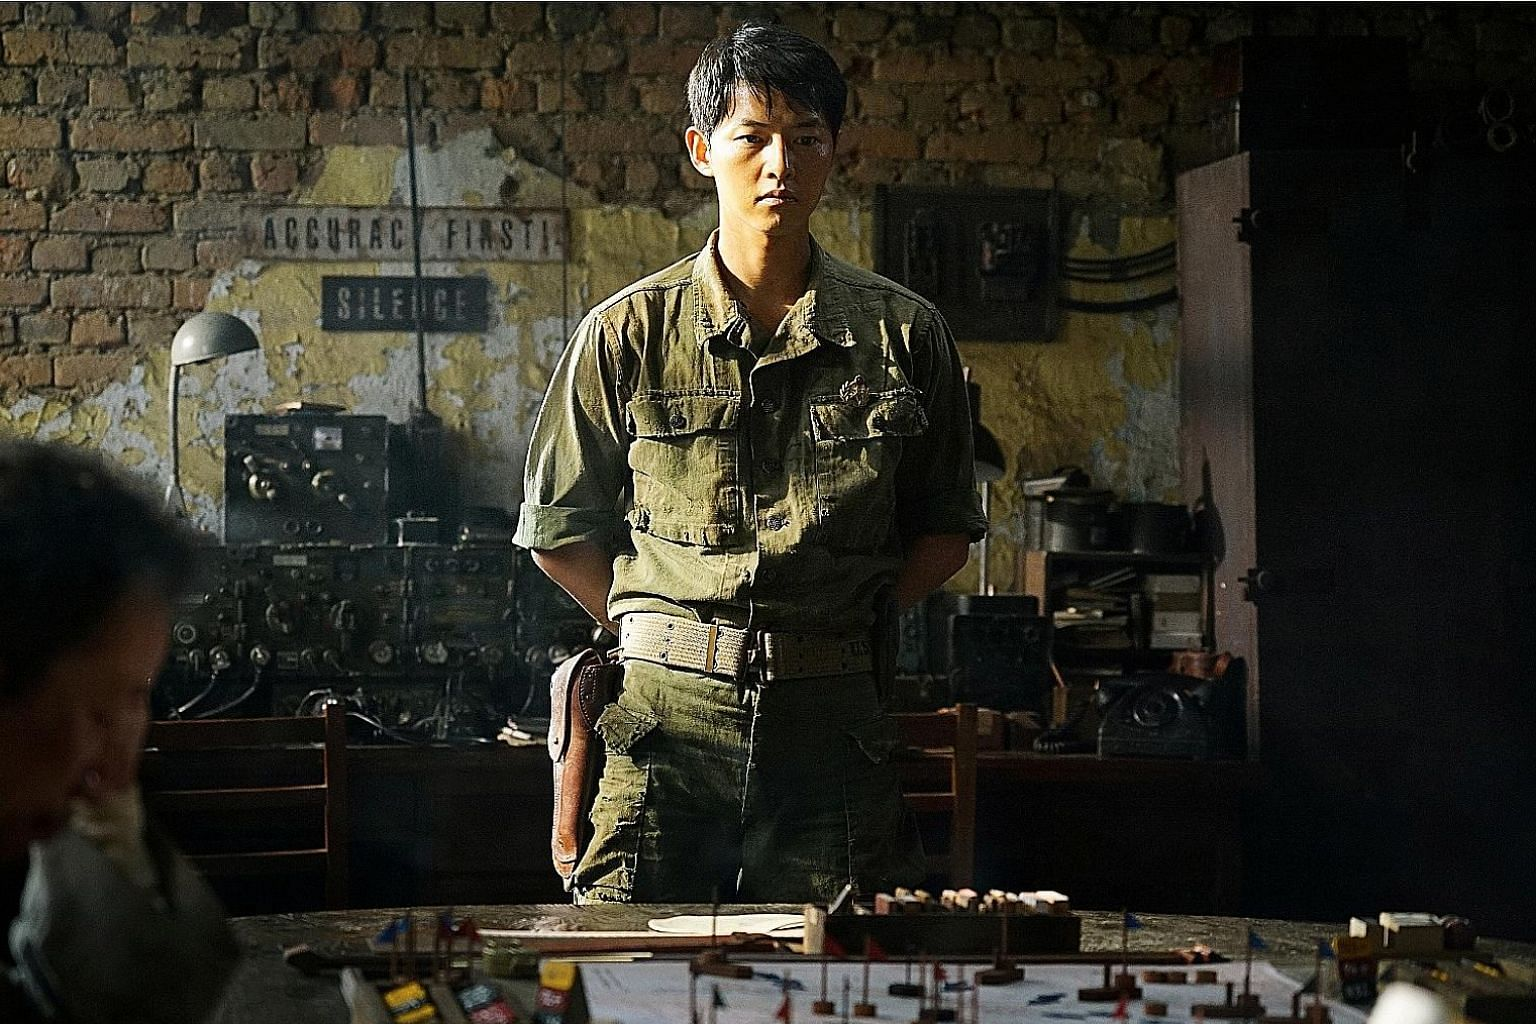 Song Joong Ki (above) plays a soldier sent on a mission to a forced labour camp in The Battleship Island.